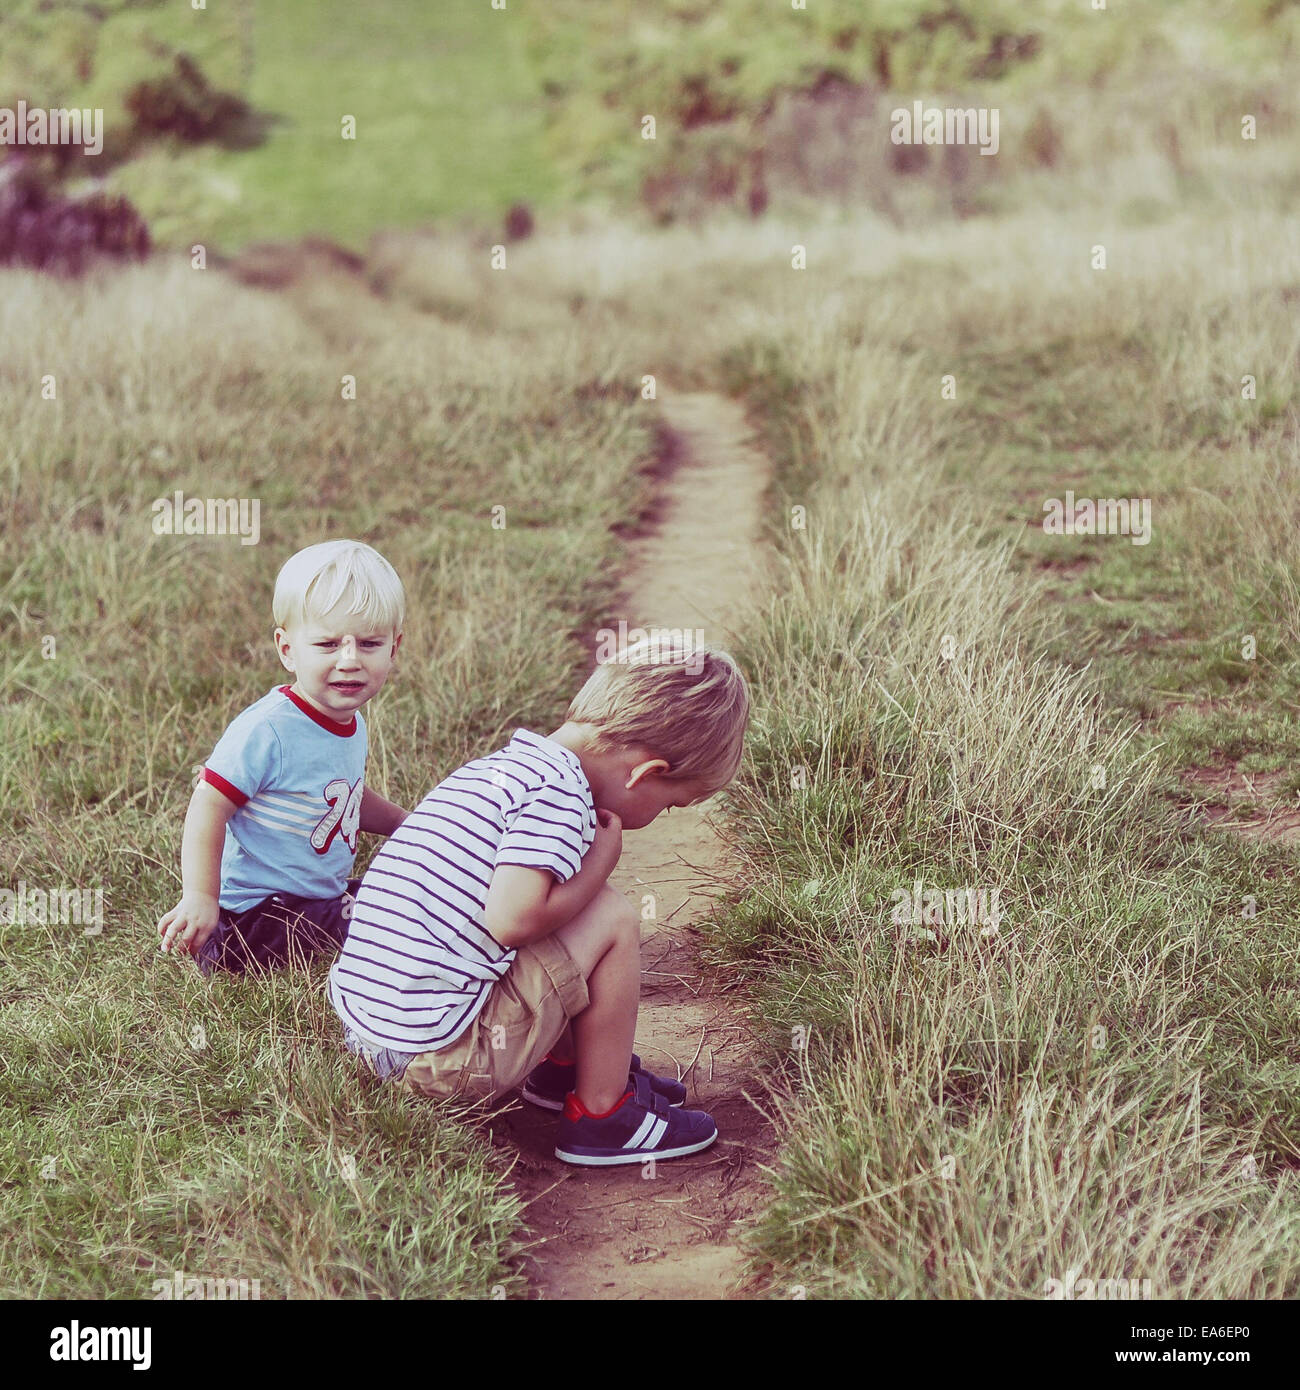 Two boys sitting by a footpath - Stock Image